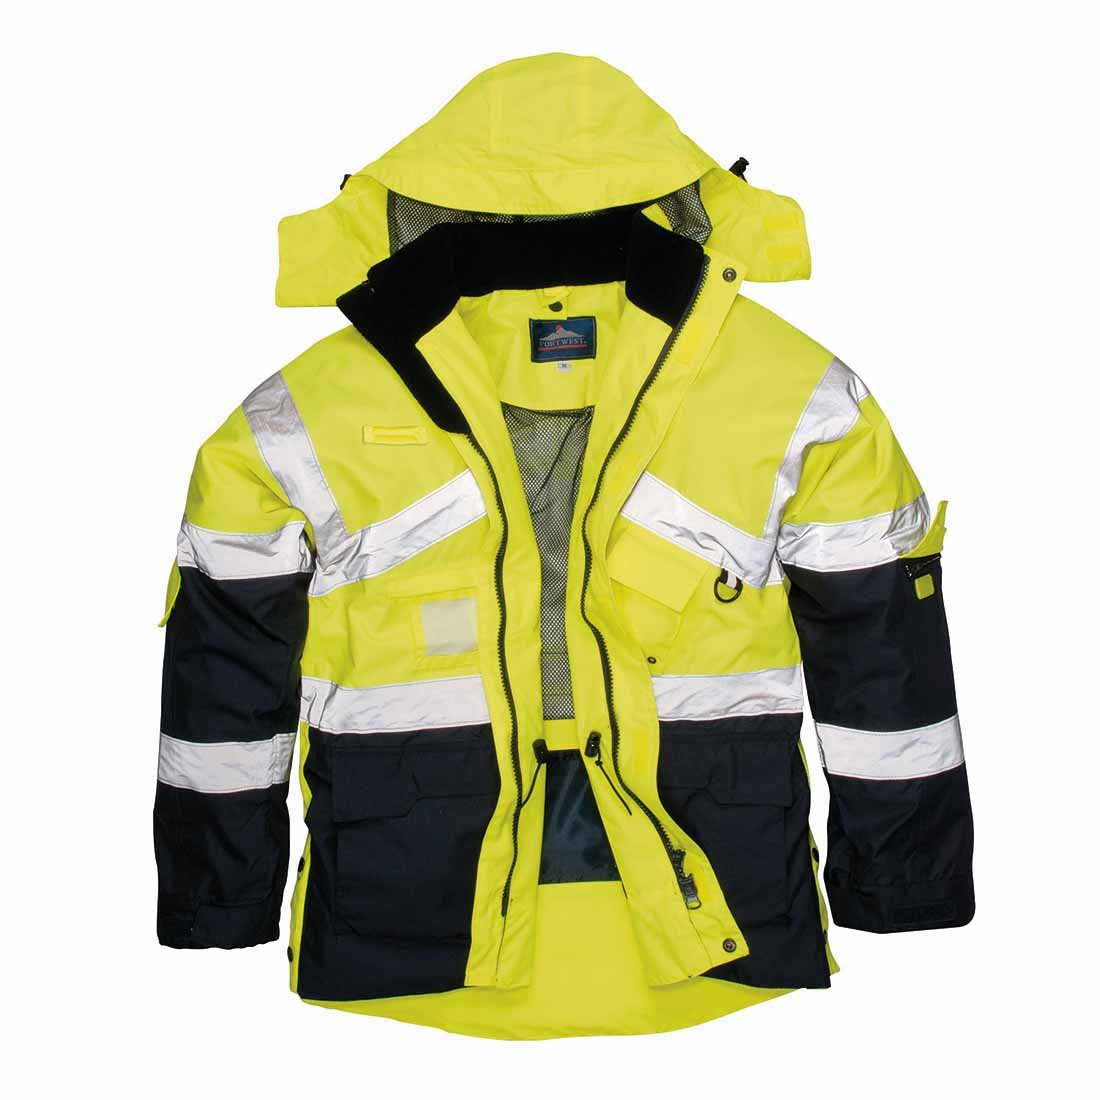 HI VIS Breathable Safety Jacket Coat Radio Loop D Ring High Visibility Workwear S760